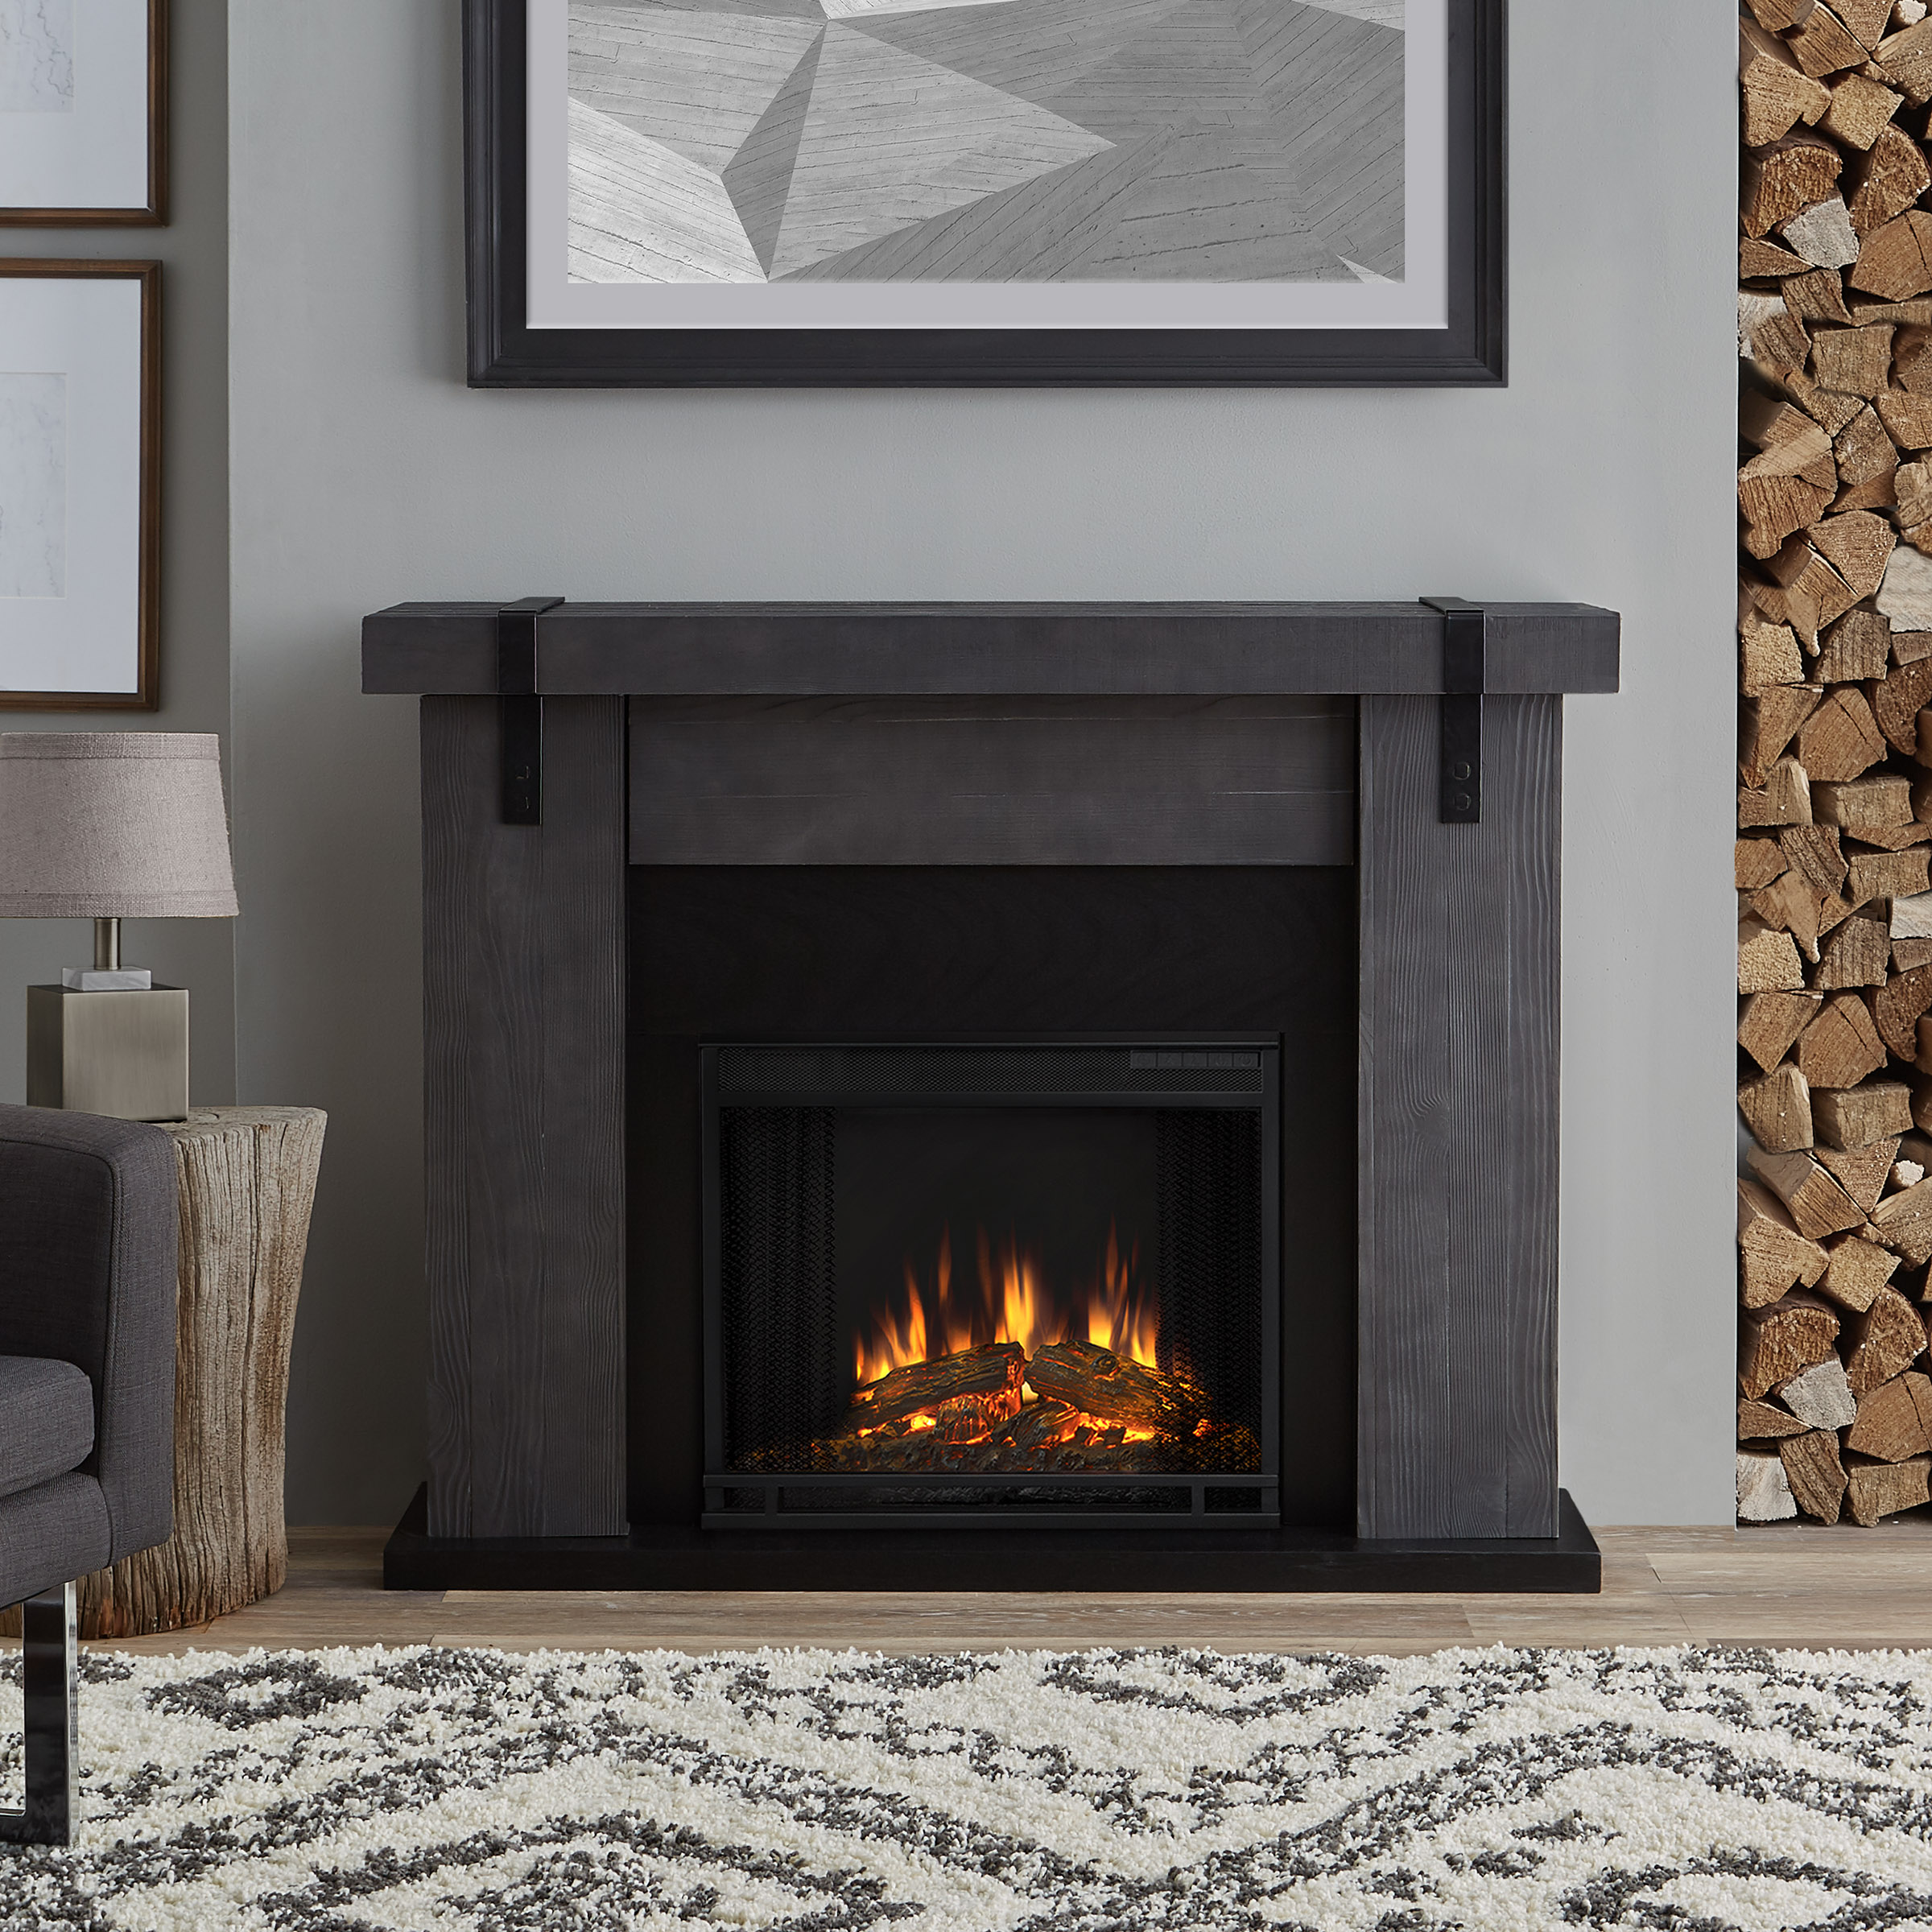 Electric Fireplaces For Sale At Walmart Aspen Electric Fireplace In Gray Barnwood By Real Flame